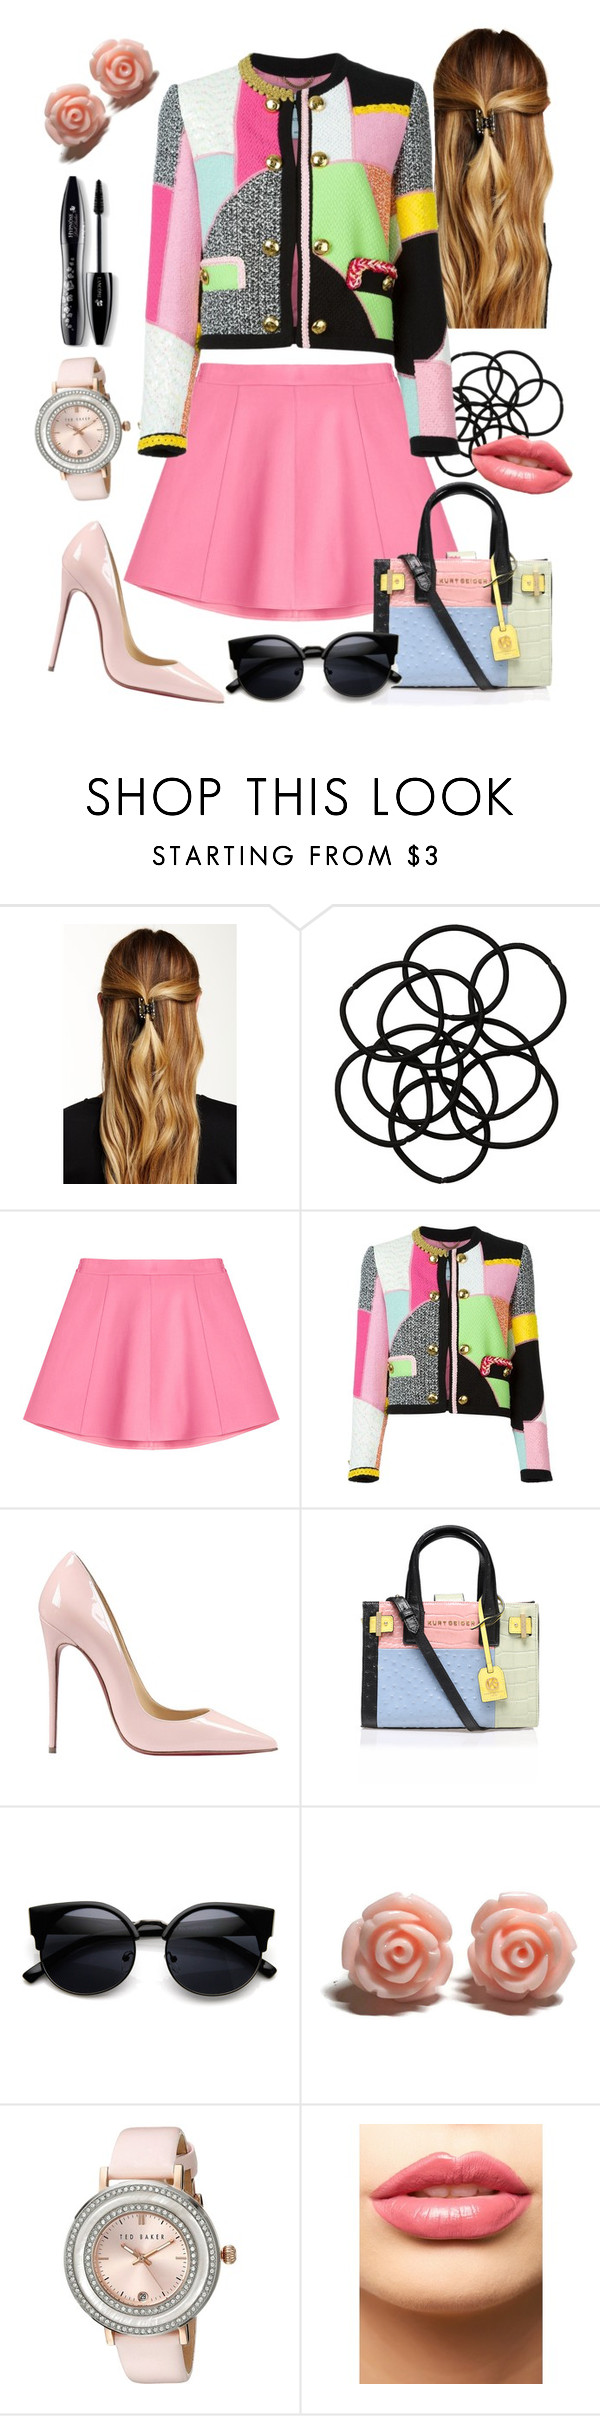 """""""Untitled #613"""" by harrypottergirl41229 ❤ liked on Polyvore featuring Natasha Accessories, Monki, RED Valentino, Moschino, Christian Louboutin, Kurt Geiger, Ted Baker, LASplash, Lancôme and women's clothing"""